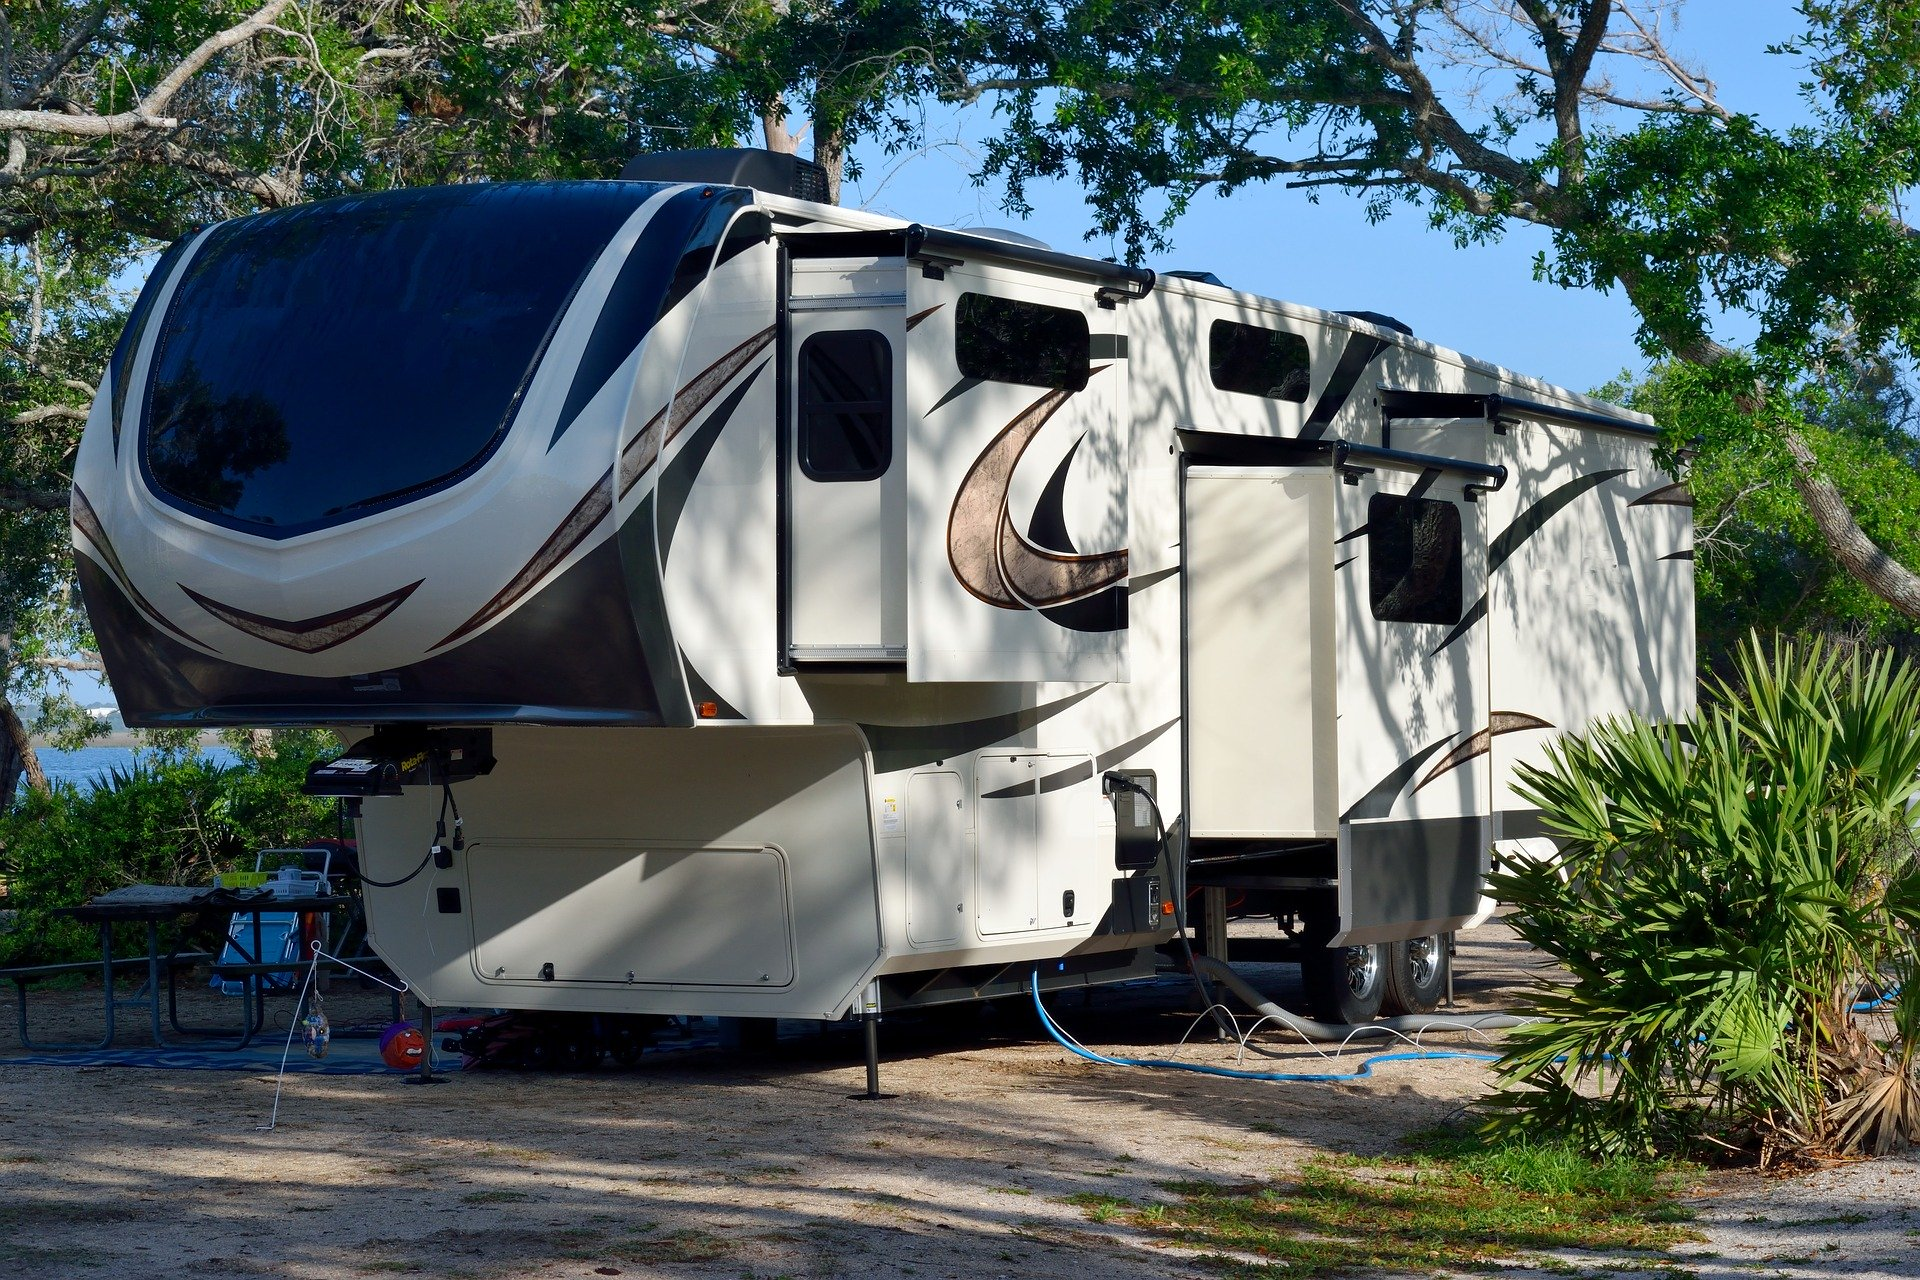 a fifth wheel trailer set up at a campsite